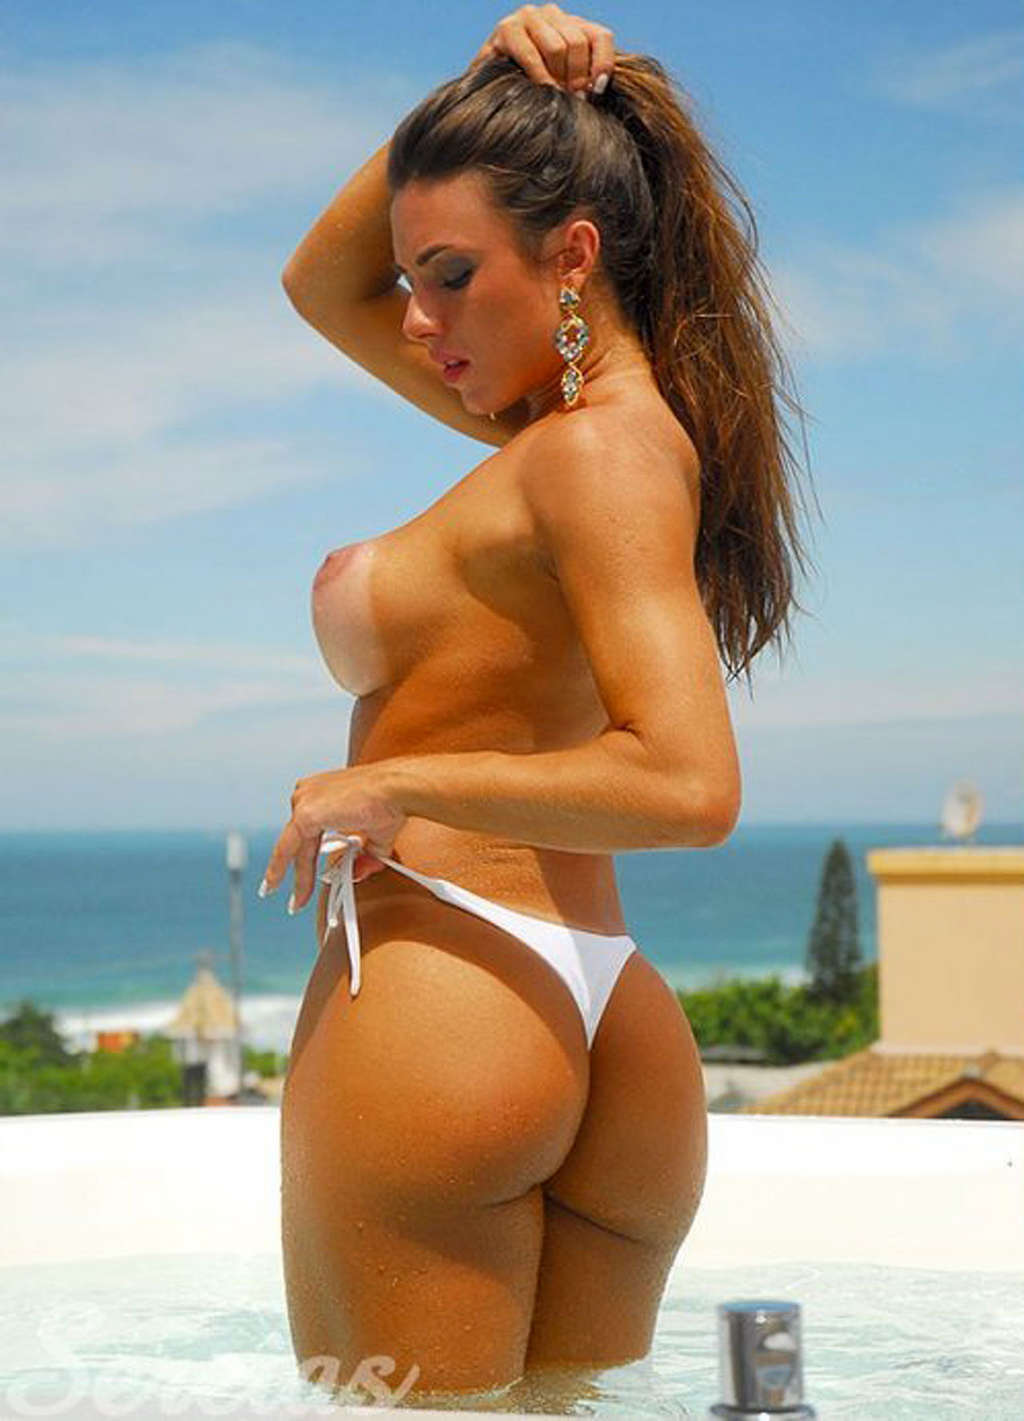 from Travis nicole bahls naked photos